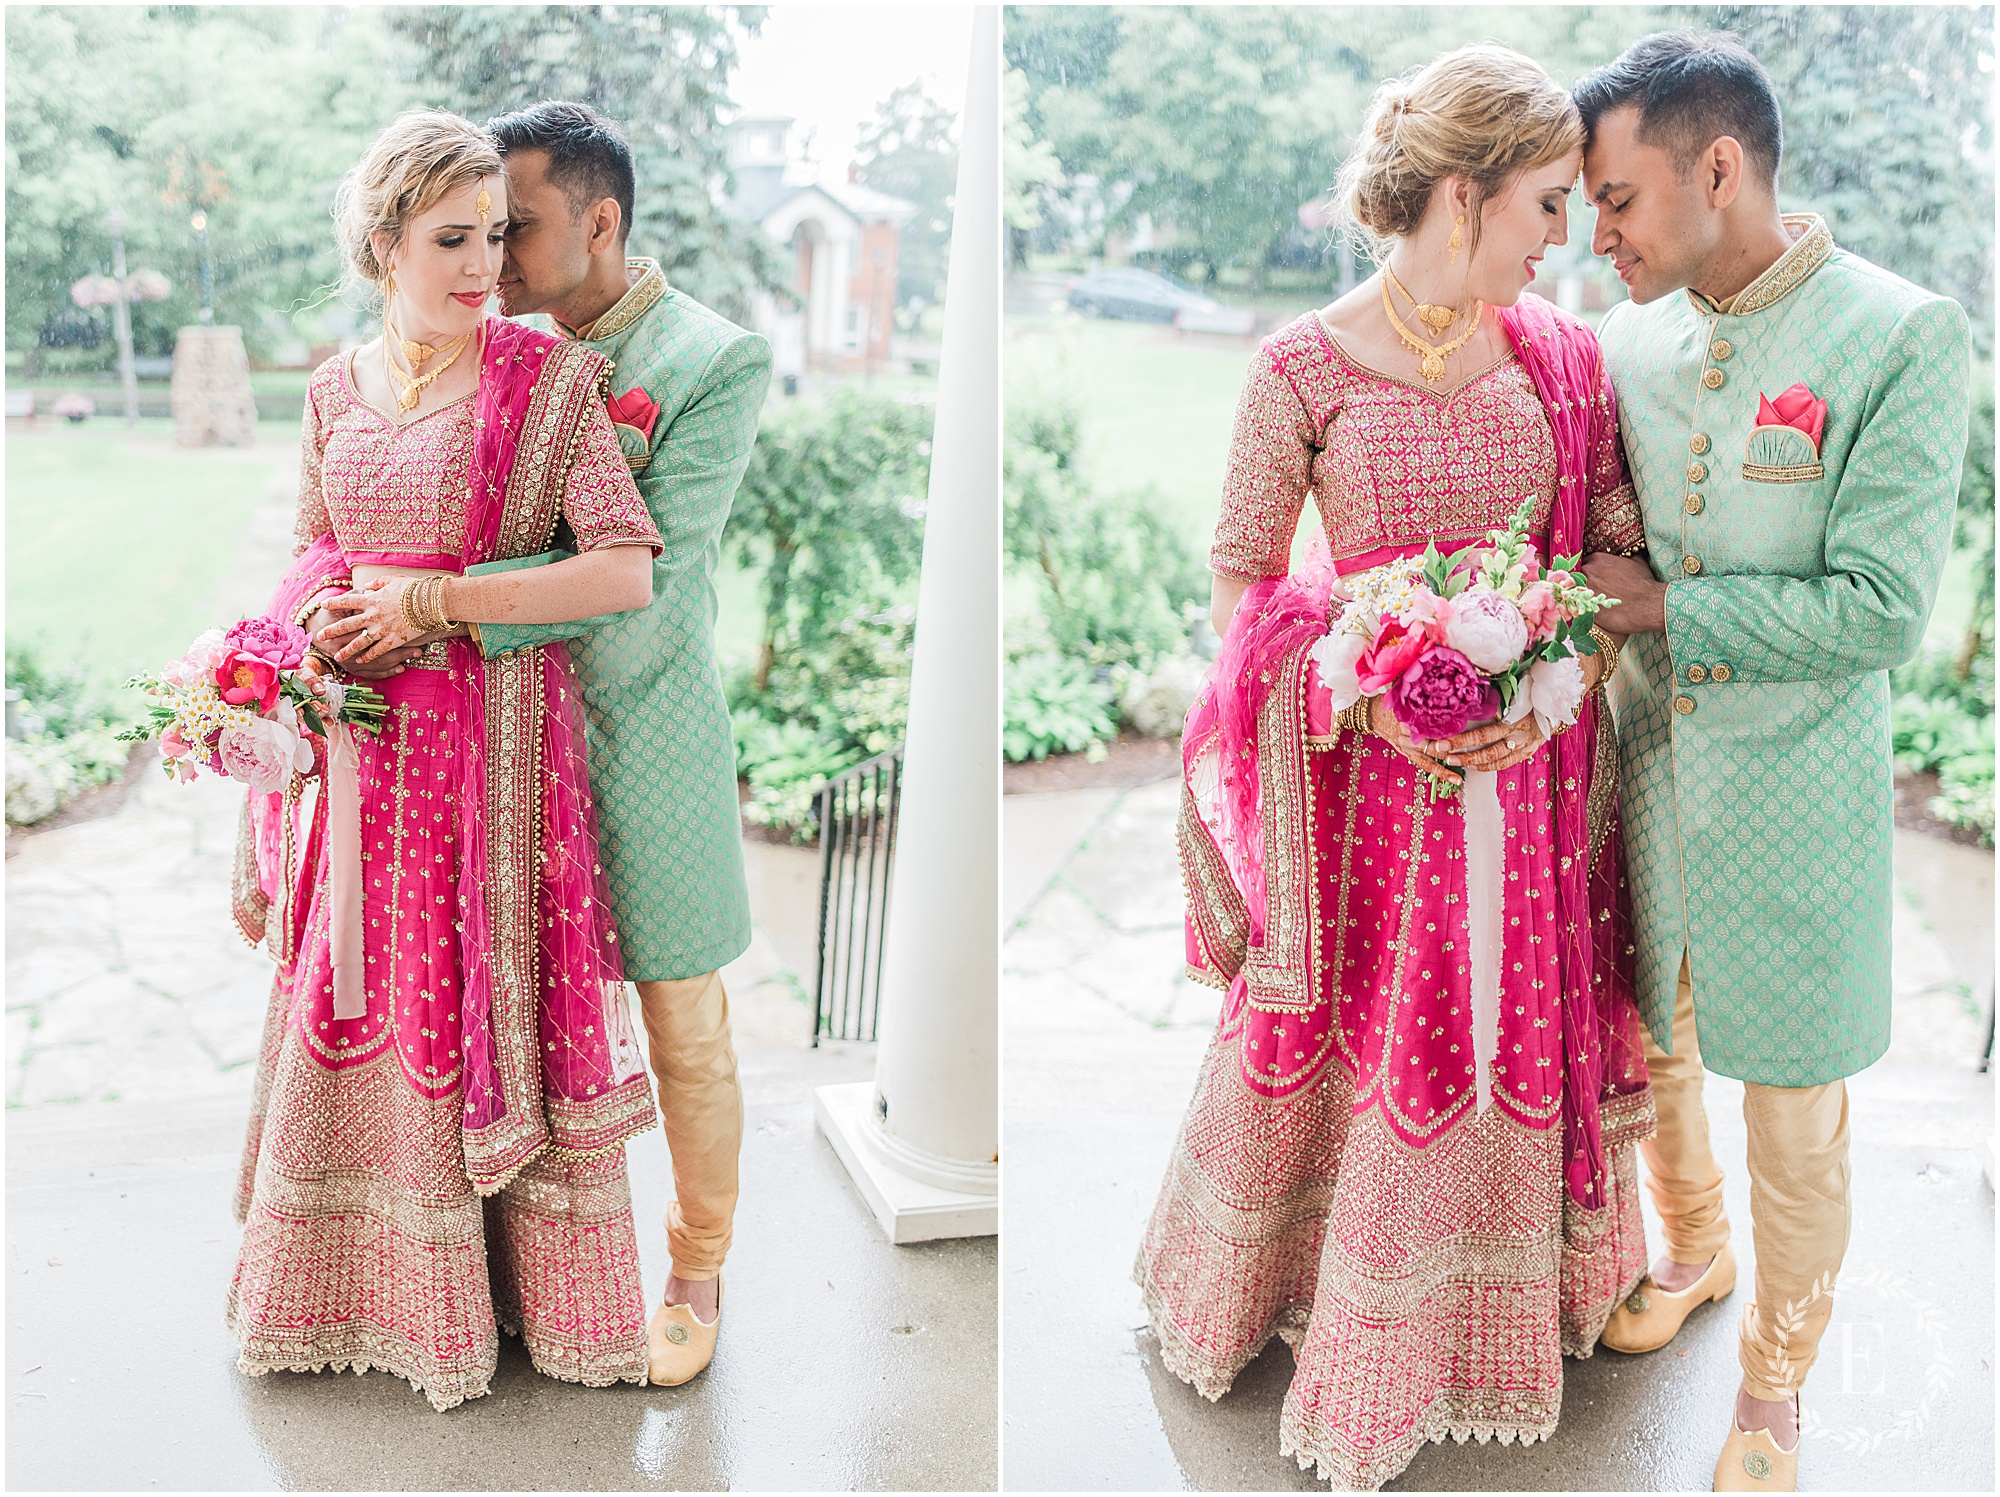 0049 Cait and Saaqib Nikah -Old Ancaster Town Hall - Photography by Emma.jpg